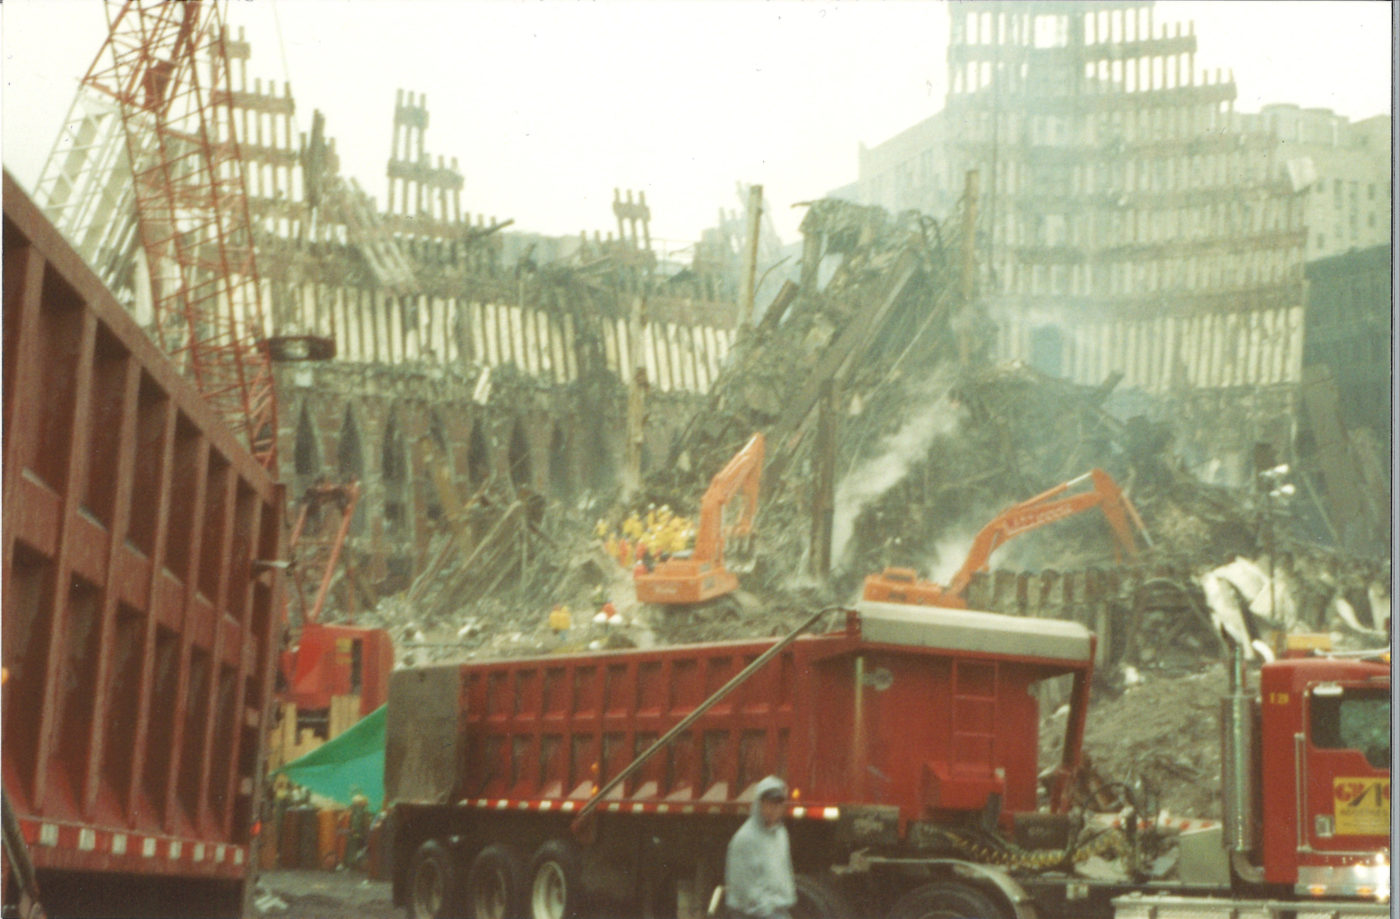 Large Skips being loaded at Ground Zero